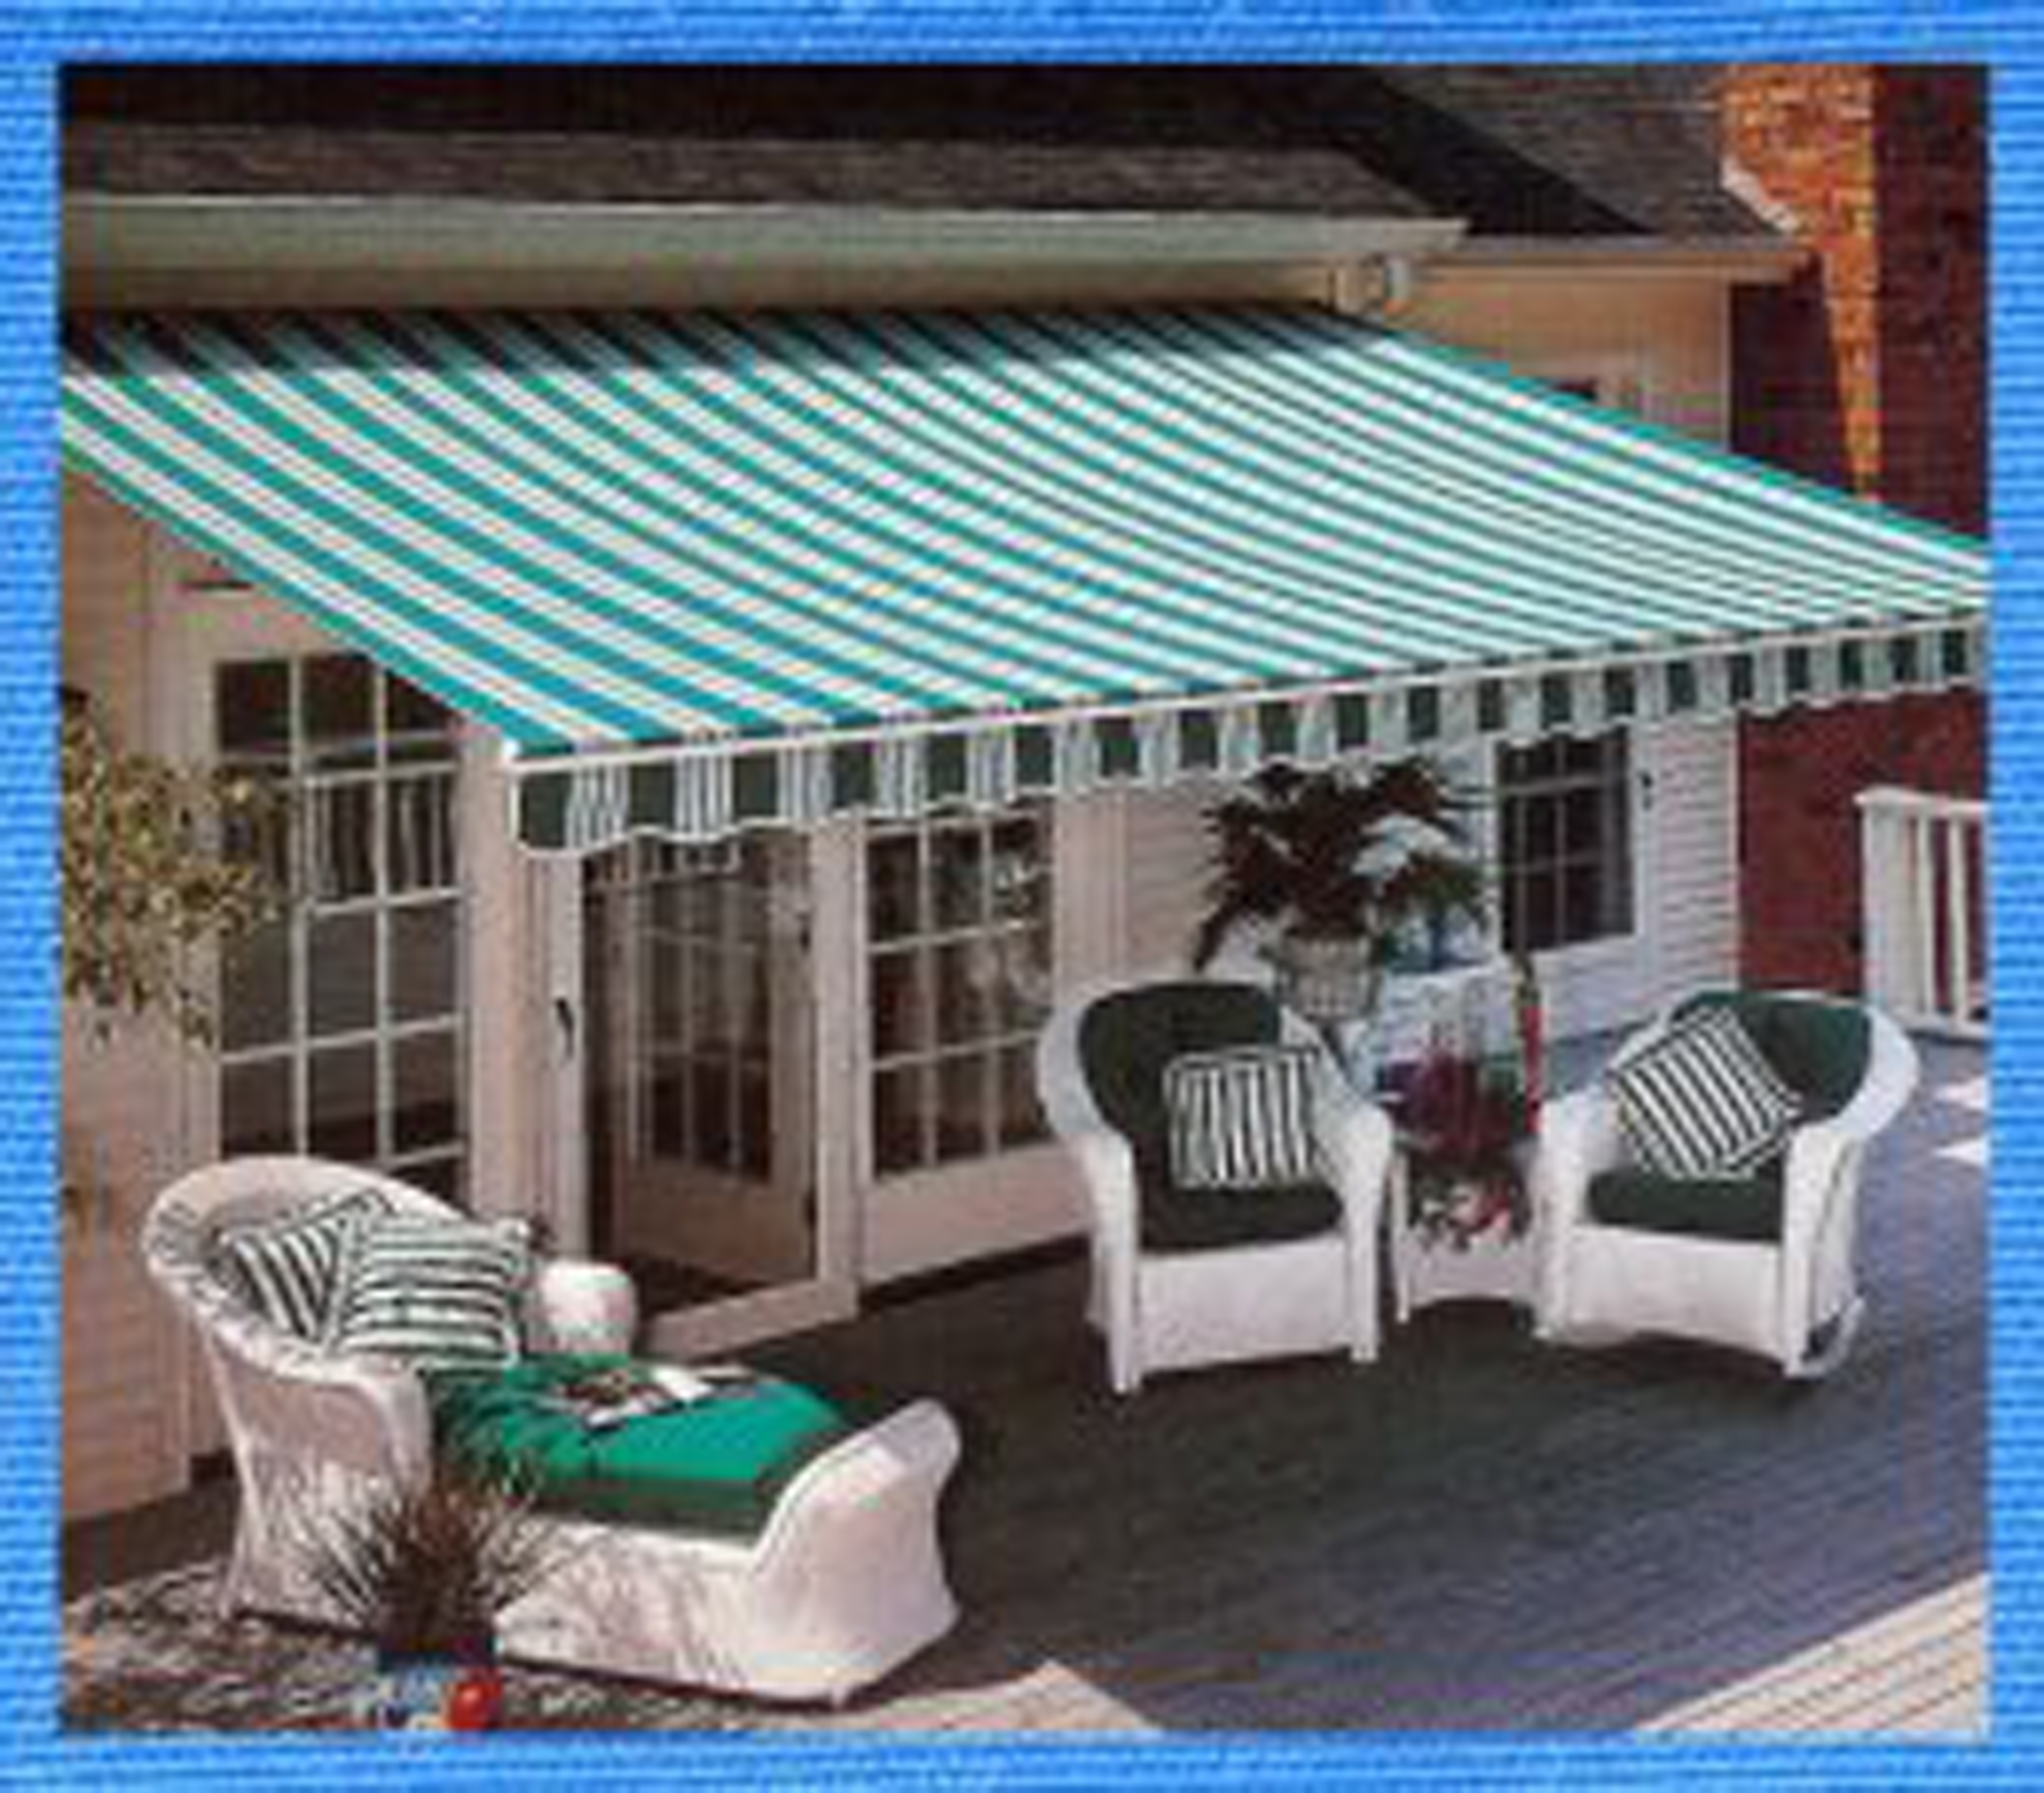 Custom Sun Shades Awnings Patio Shade Motorized Roller Drops Window Coverings